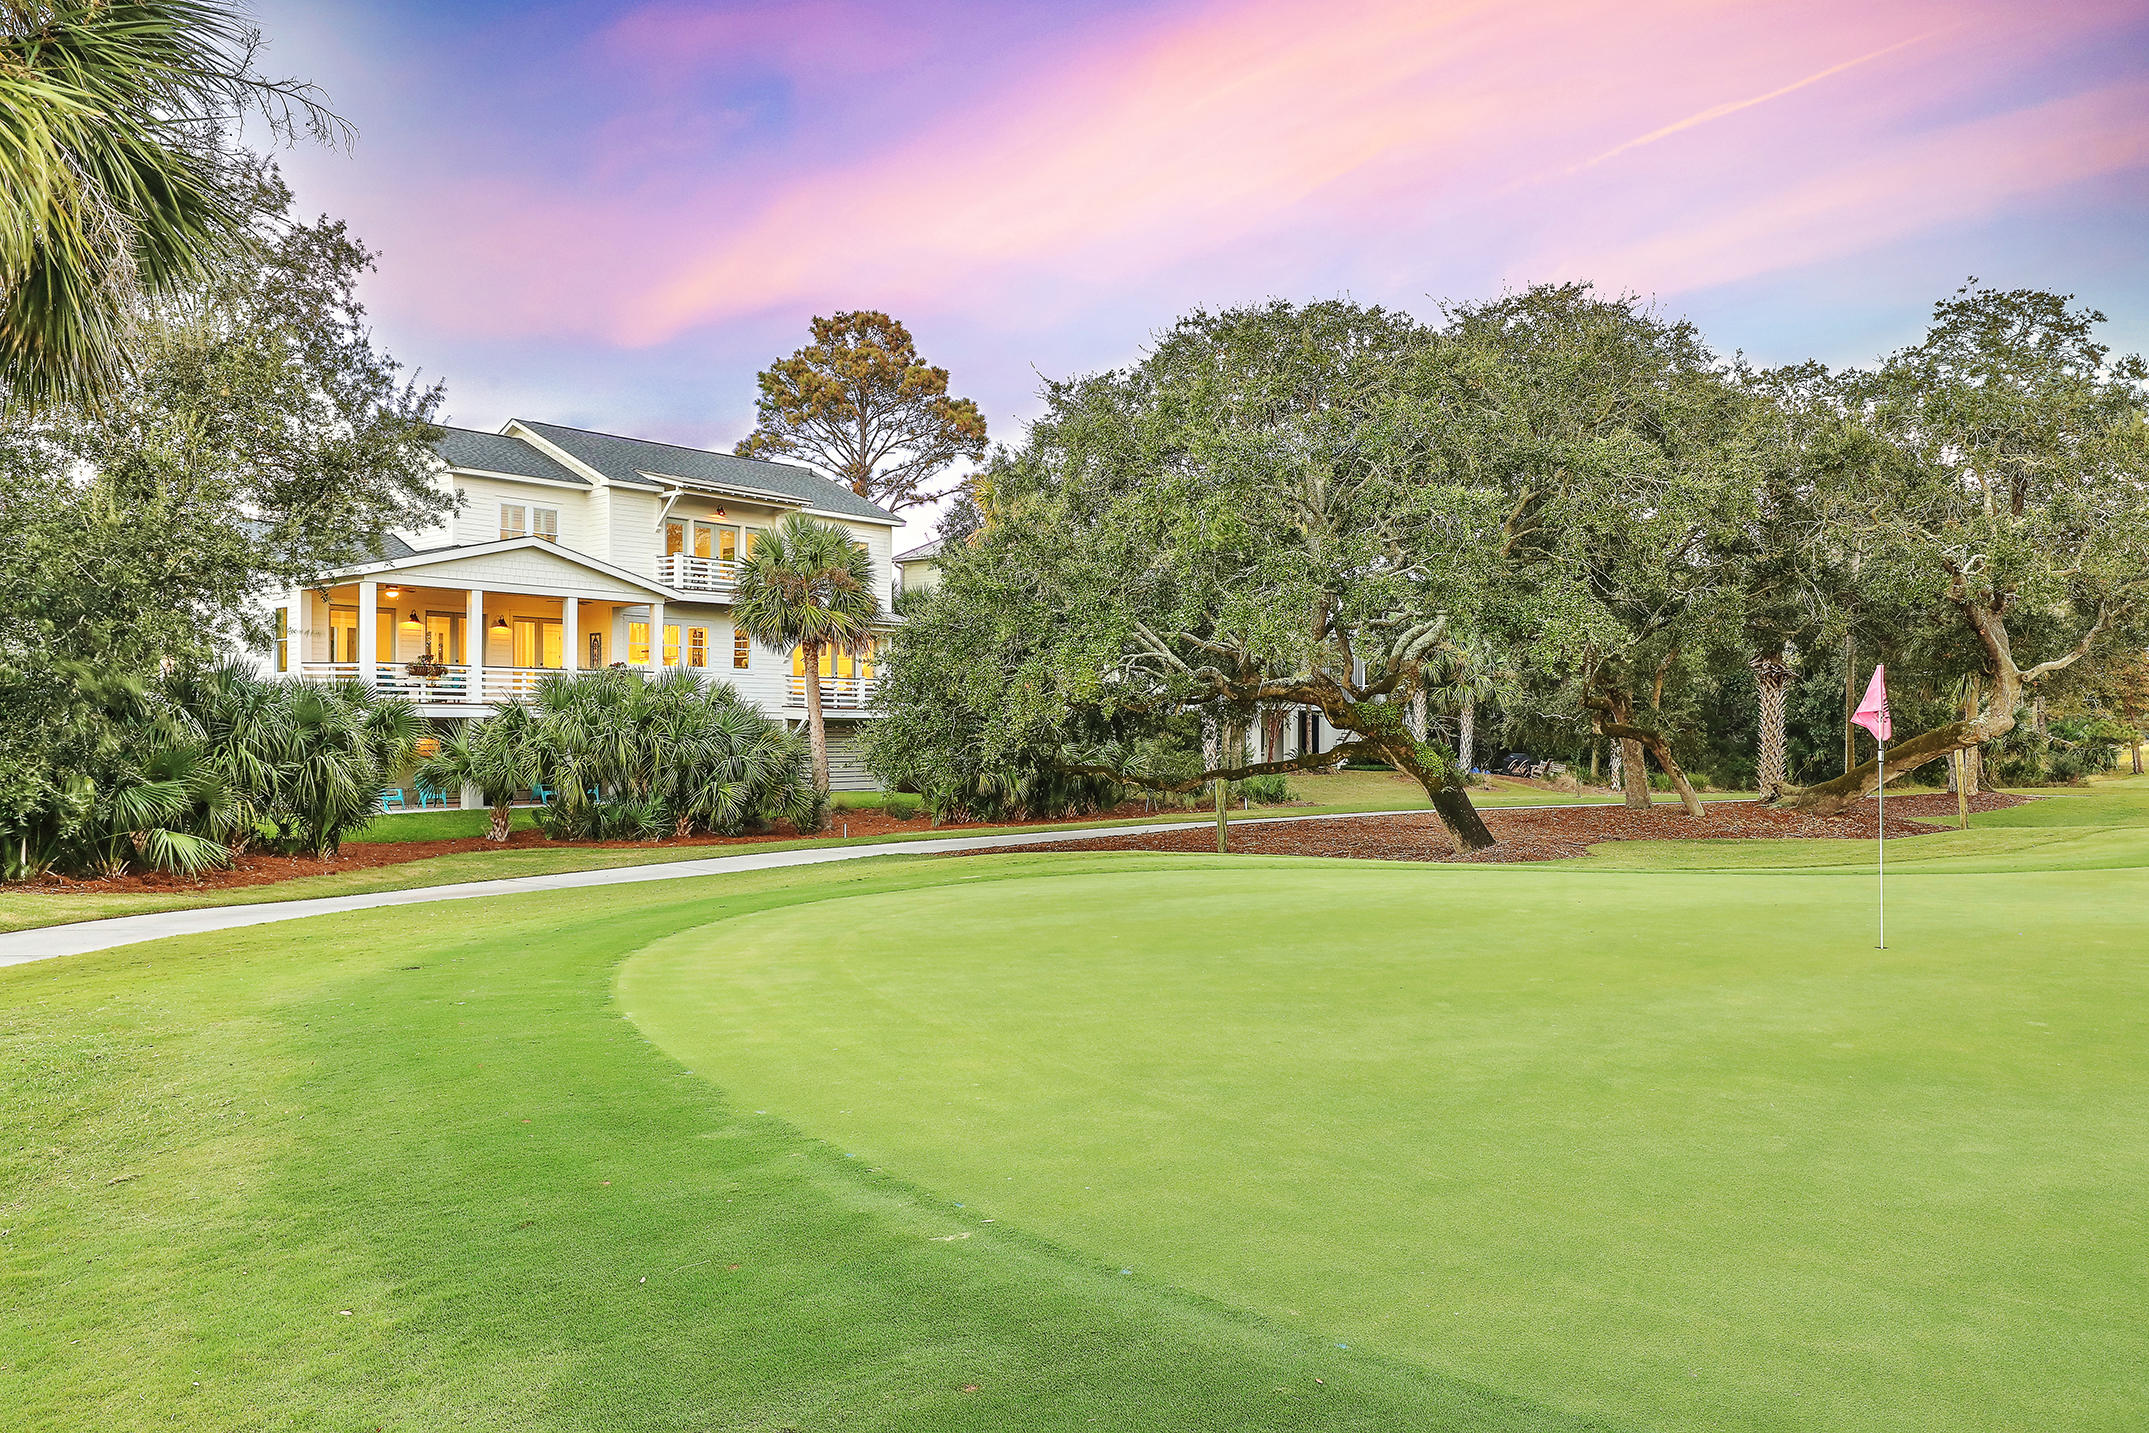 Wild Dunes Homes For Sale - 55 Seagrass, Isle of Palms, SC - 0